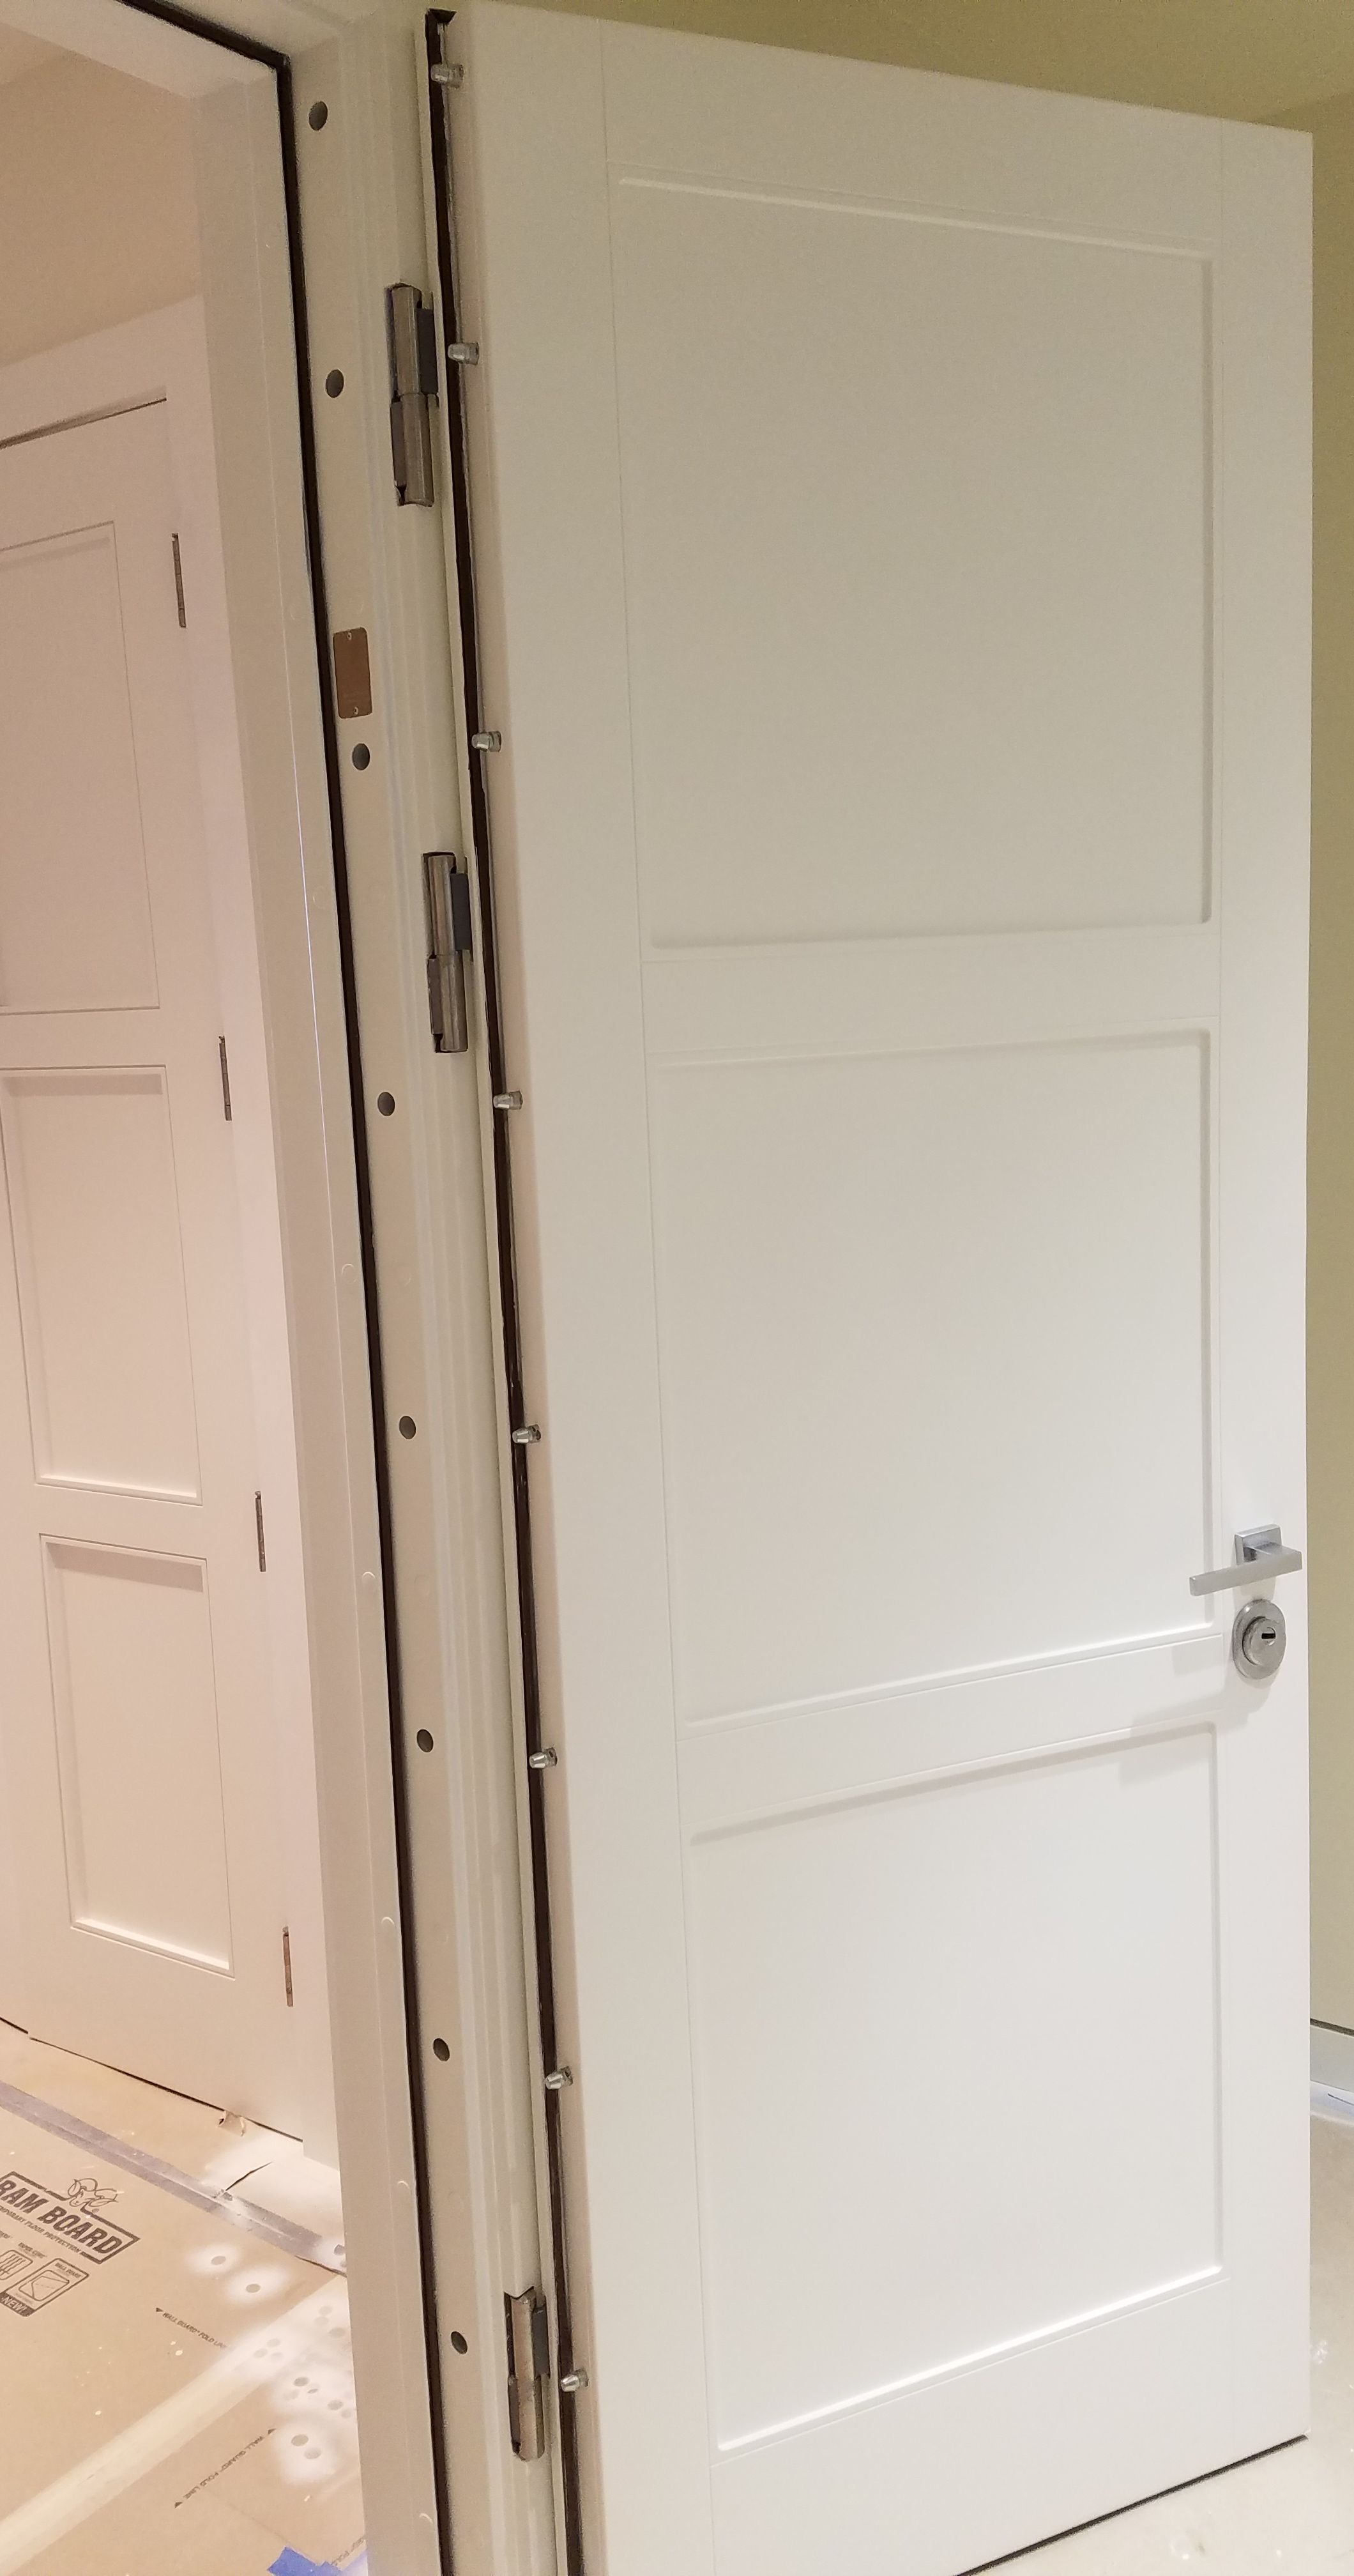 Custom High Security Bullet Resistant Doors With Decorative Wood Cladding To Match Existing Doors Security Door Steel Security Doors Doors